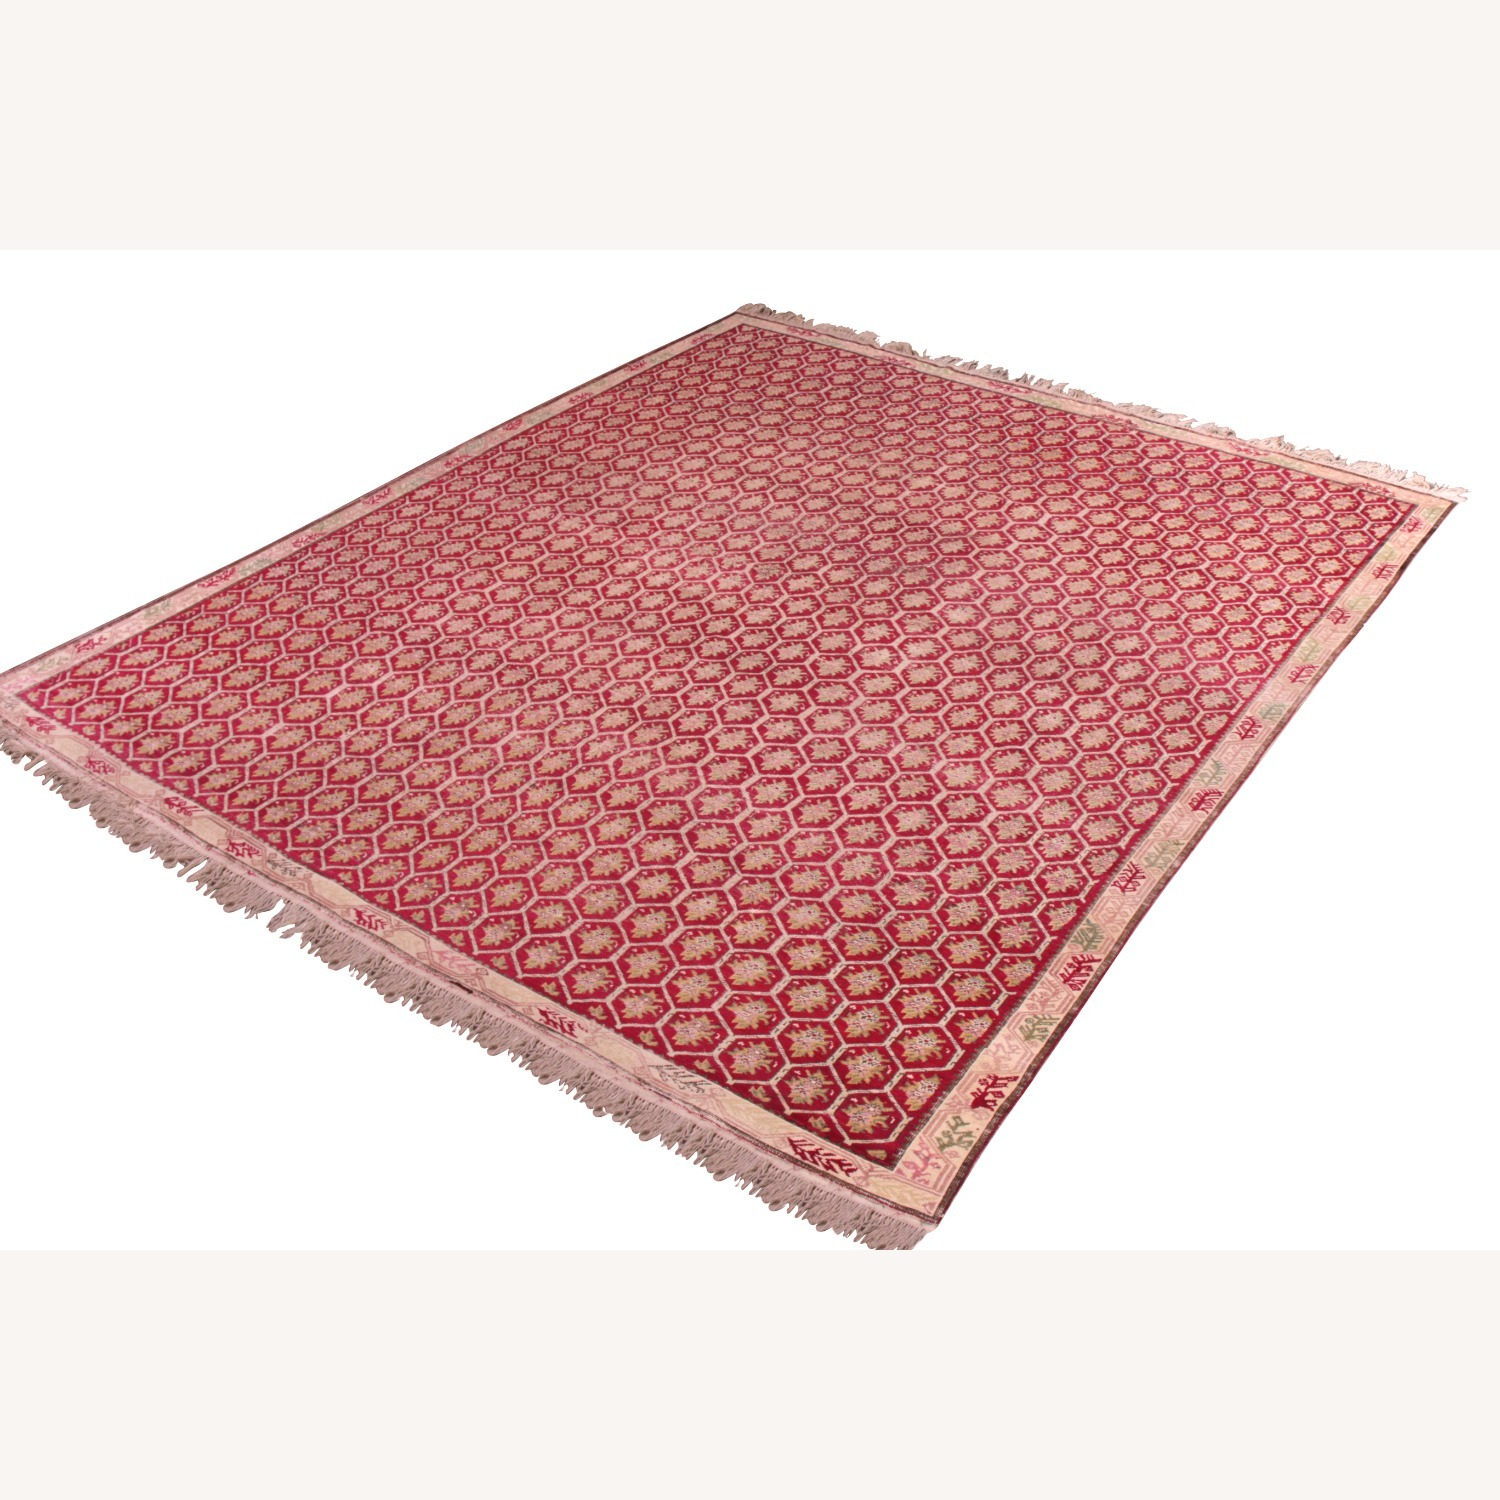 Antique Red and Pink Floral Rug - image-3